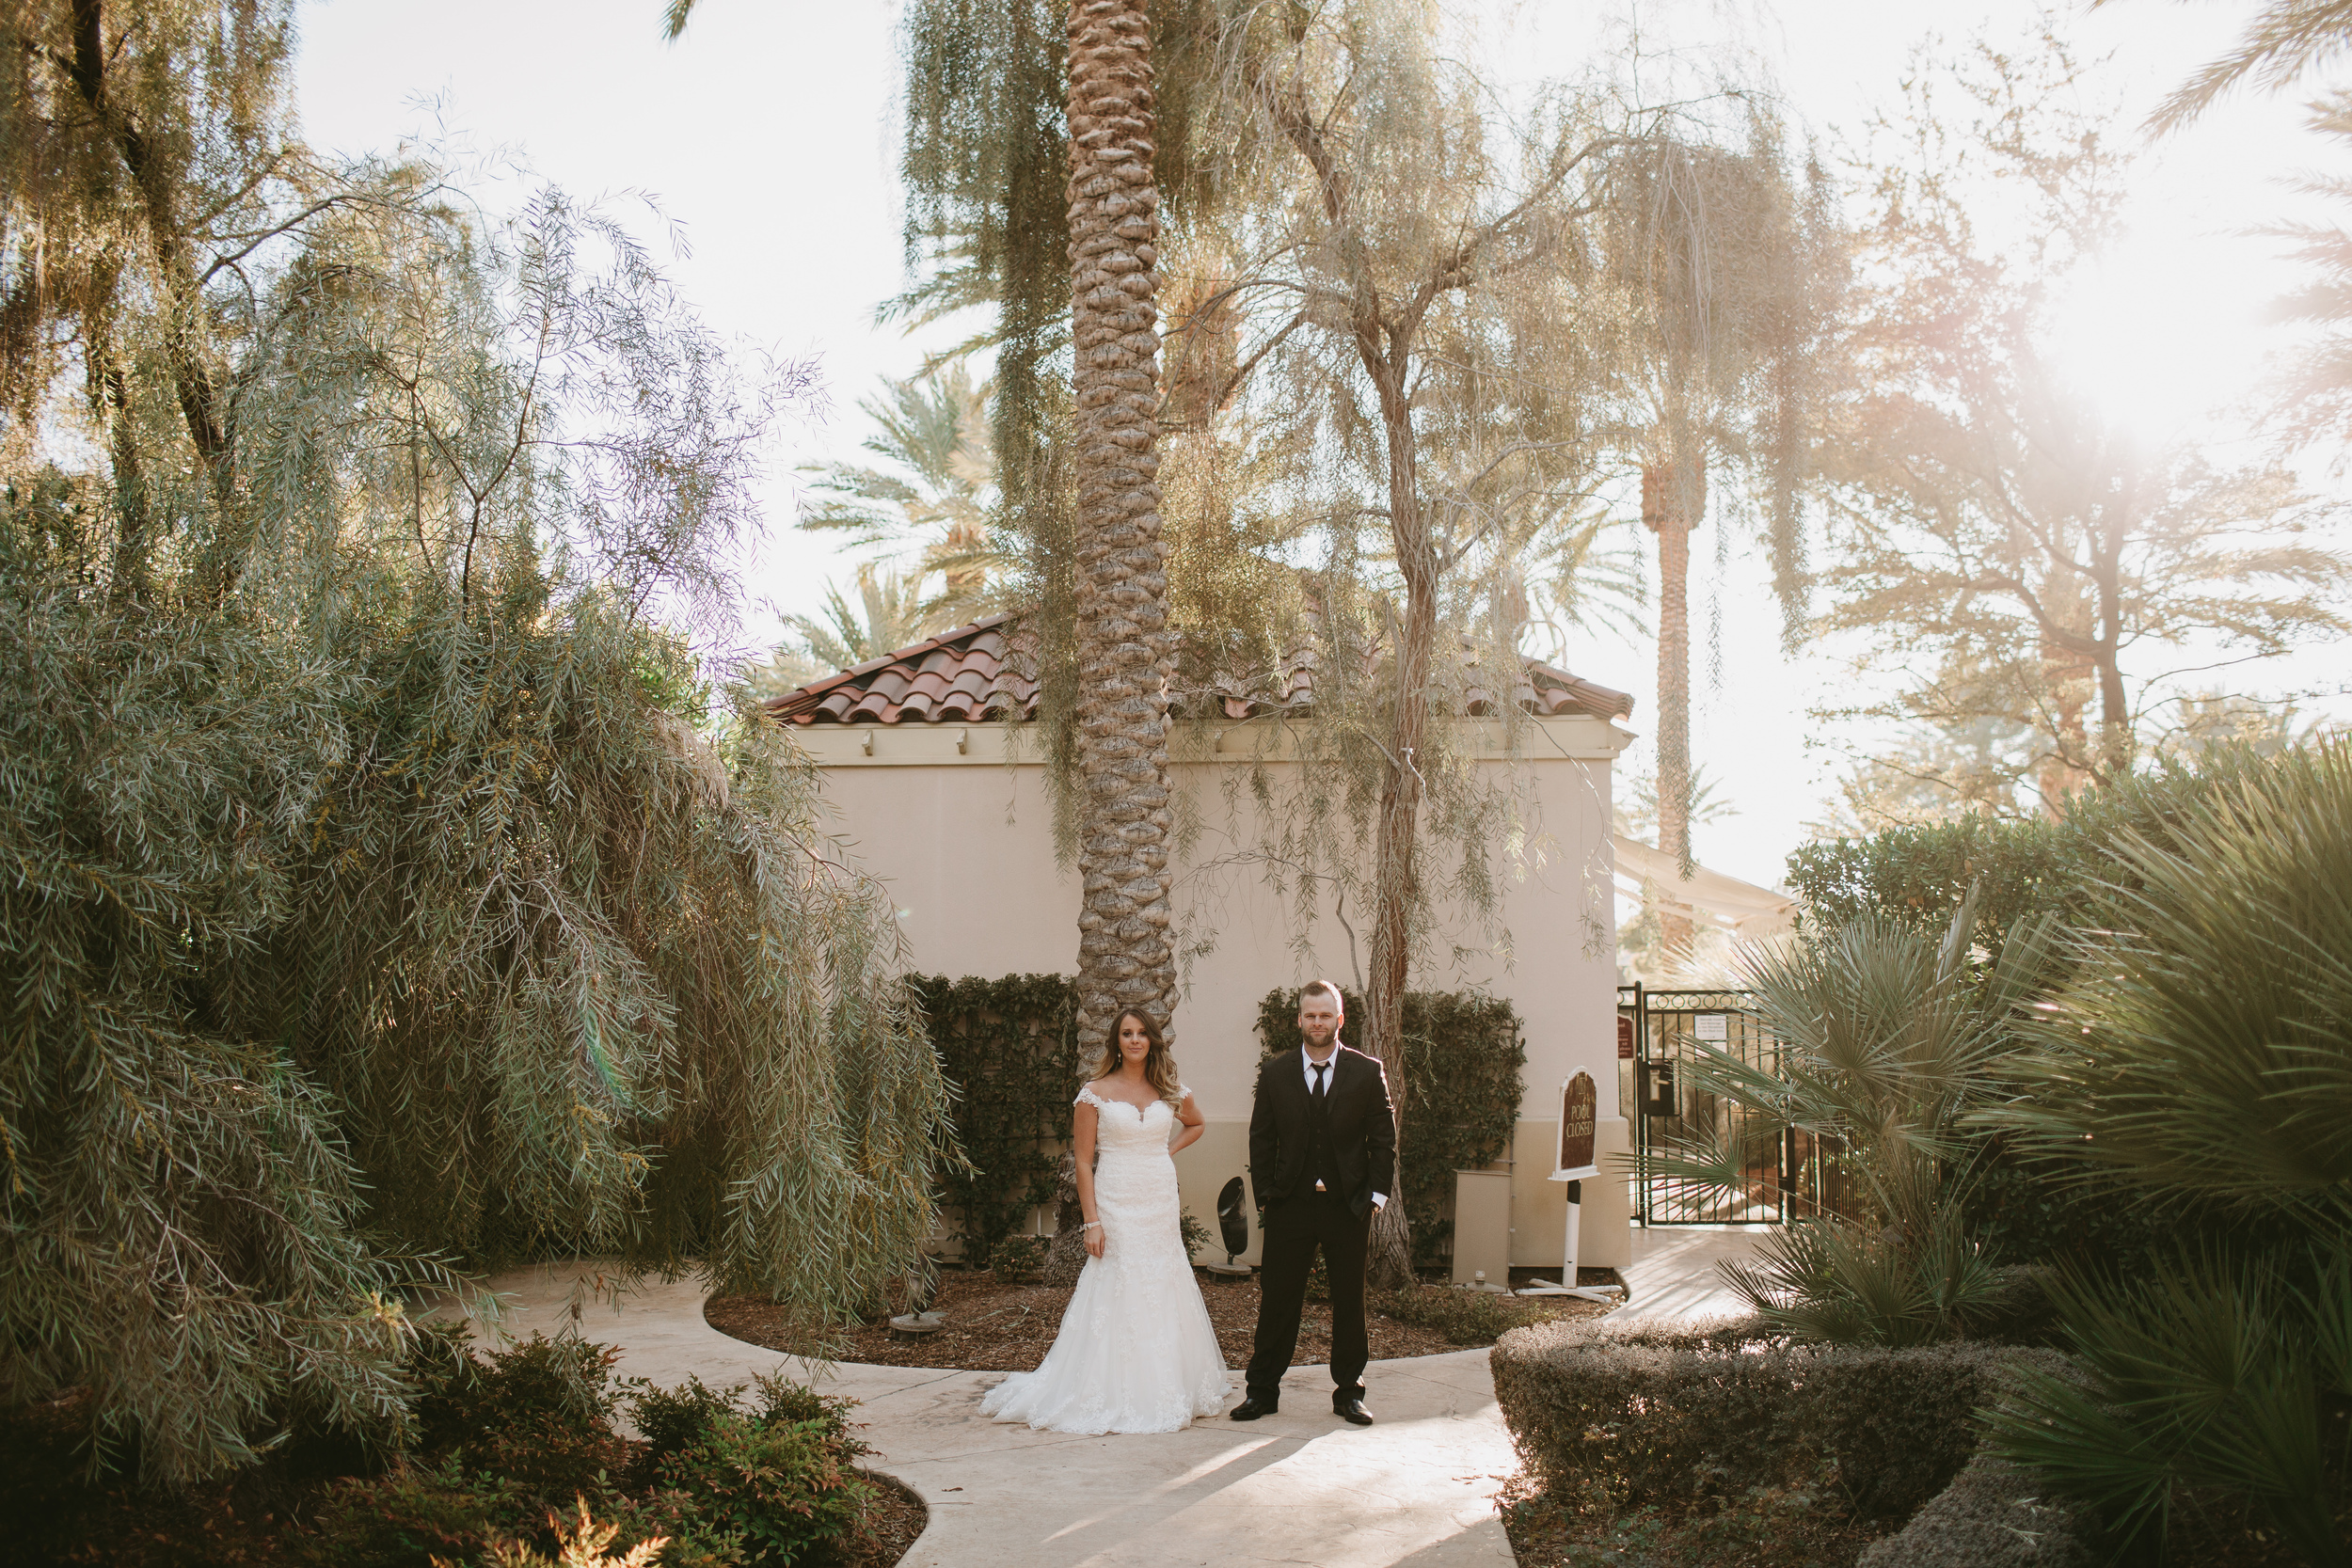 edgy elopement photography